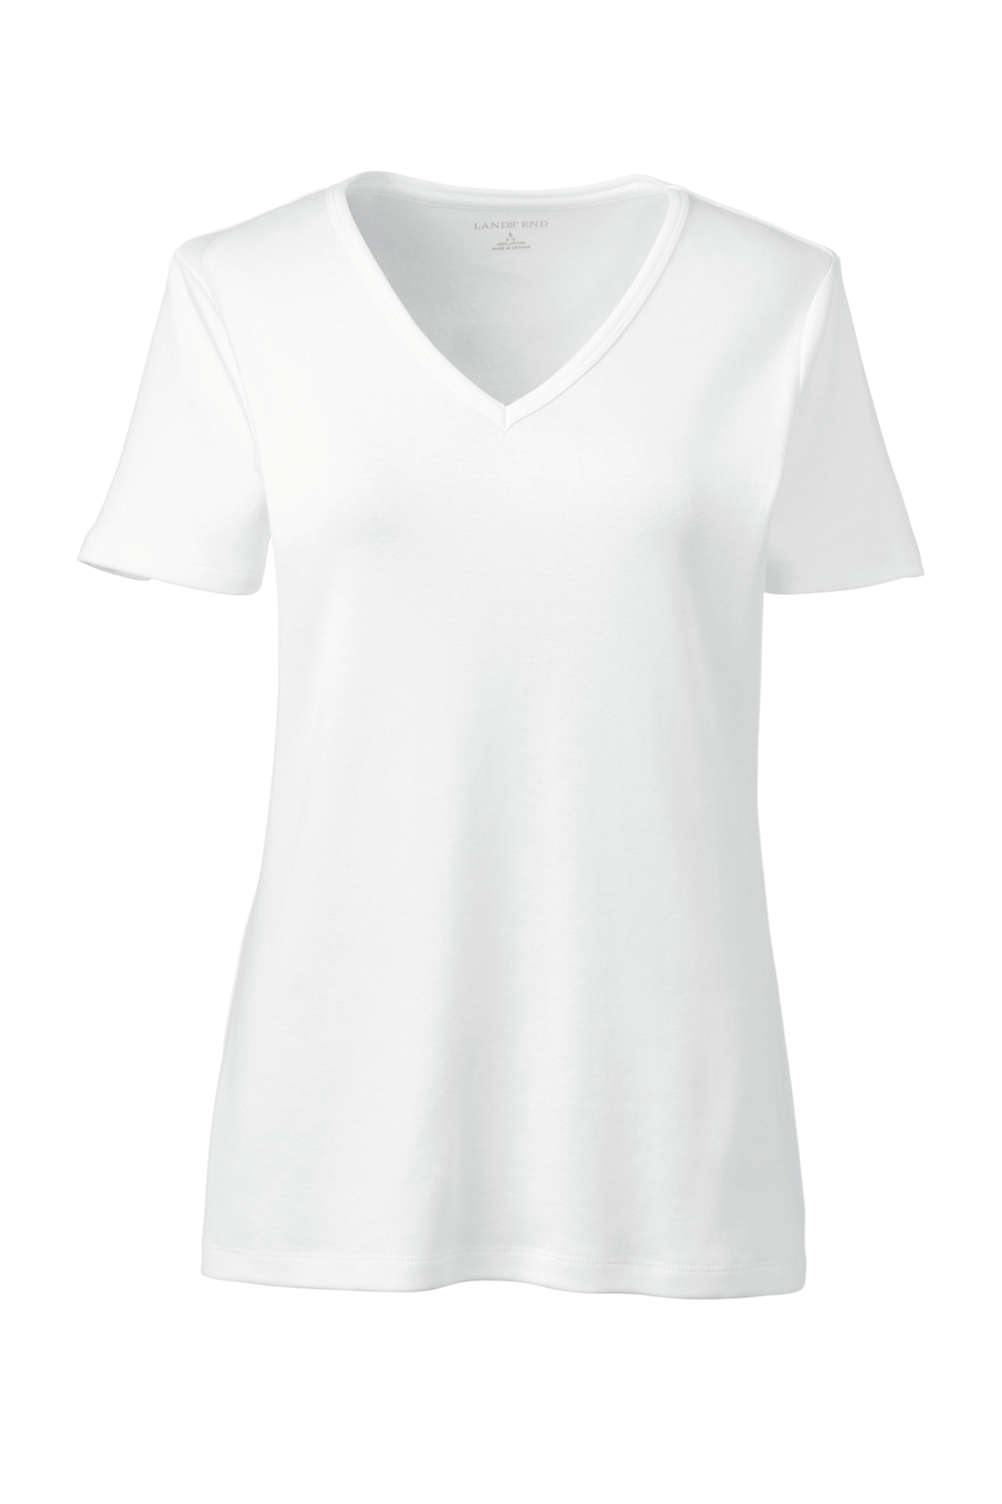 12de35e7e1a6 Women s All Cotton Short Sleeve T-Shirt Rib Knit V-Neck from Lands  End